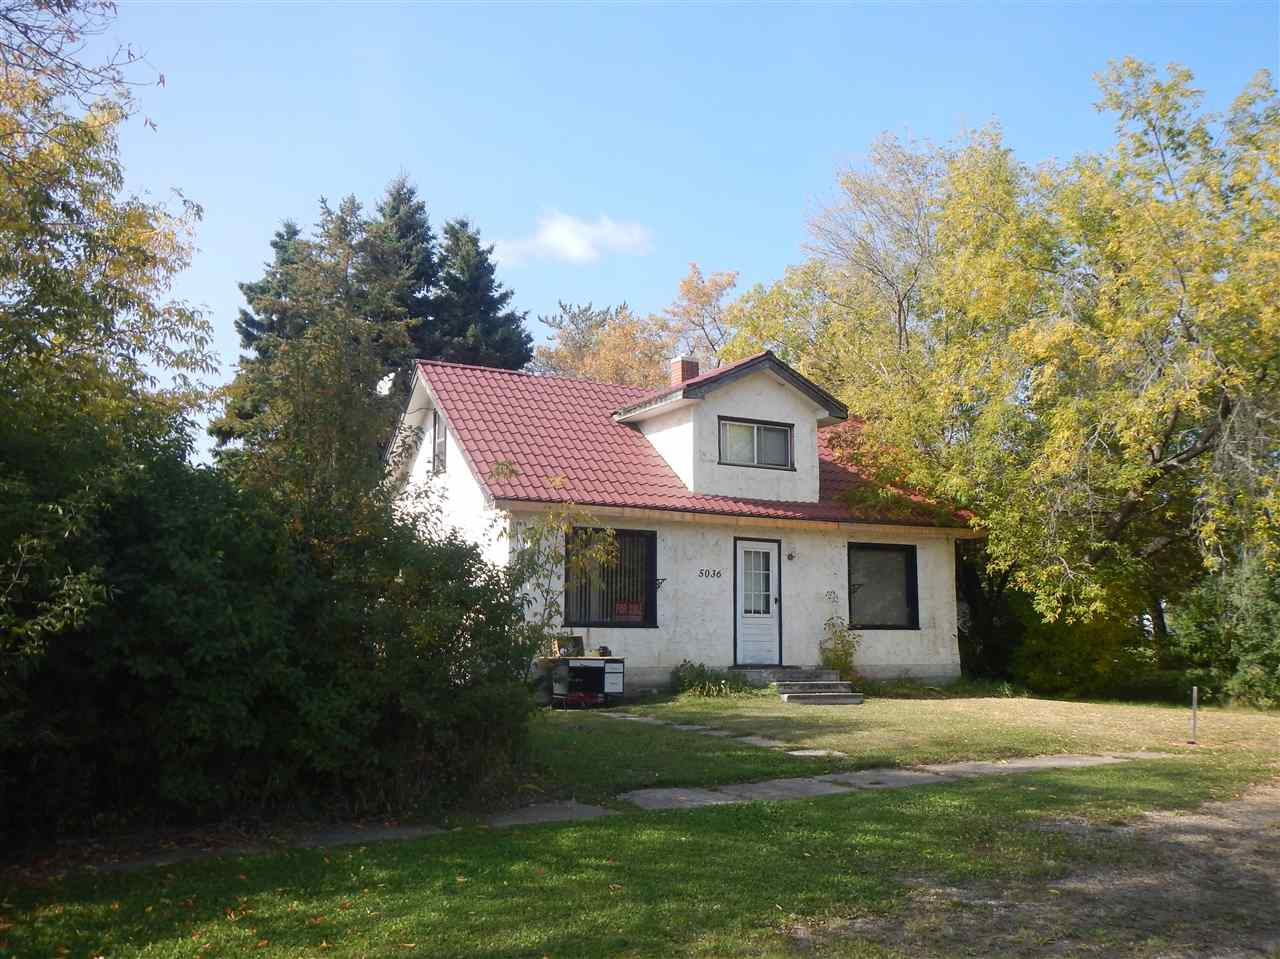 Affordable: make this one yours, 3bed,1bath,1300sq ft home, full basement on large lot, close to Creek walking path+Iron Horse Rec Trail. Off street parking fits your vehicles along with Trailers with back alley access. Appreciate: lawns, mature trees, space to entertain or just relax, have a garden-grow your own. Indoors: back porch hosts the extras, just off main bath+kitchen with eating area. Livingroom is wide open to diningroom, ample windows provide natural light, Bedroom+front door staircase complete main. Upper level hosts 2 bedrs plus open area. Such character here, original trim, baseboards, doors, hardwood under carpets-bring it back to it's original glory, tin roof already new, ugrades thru time. Embrace this quaint community where children still ride their bikes to school. Space where kids could be@home, run thru sprinklers, play hide+seek, kick the can, firepits+star gazing nights. Air is fresh, sky is clear+wide open. Sense of community means something here, you'll love an easier pace.